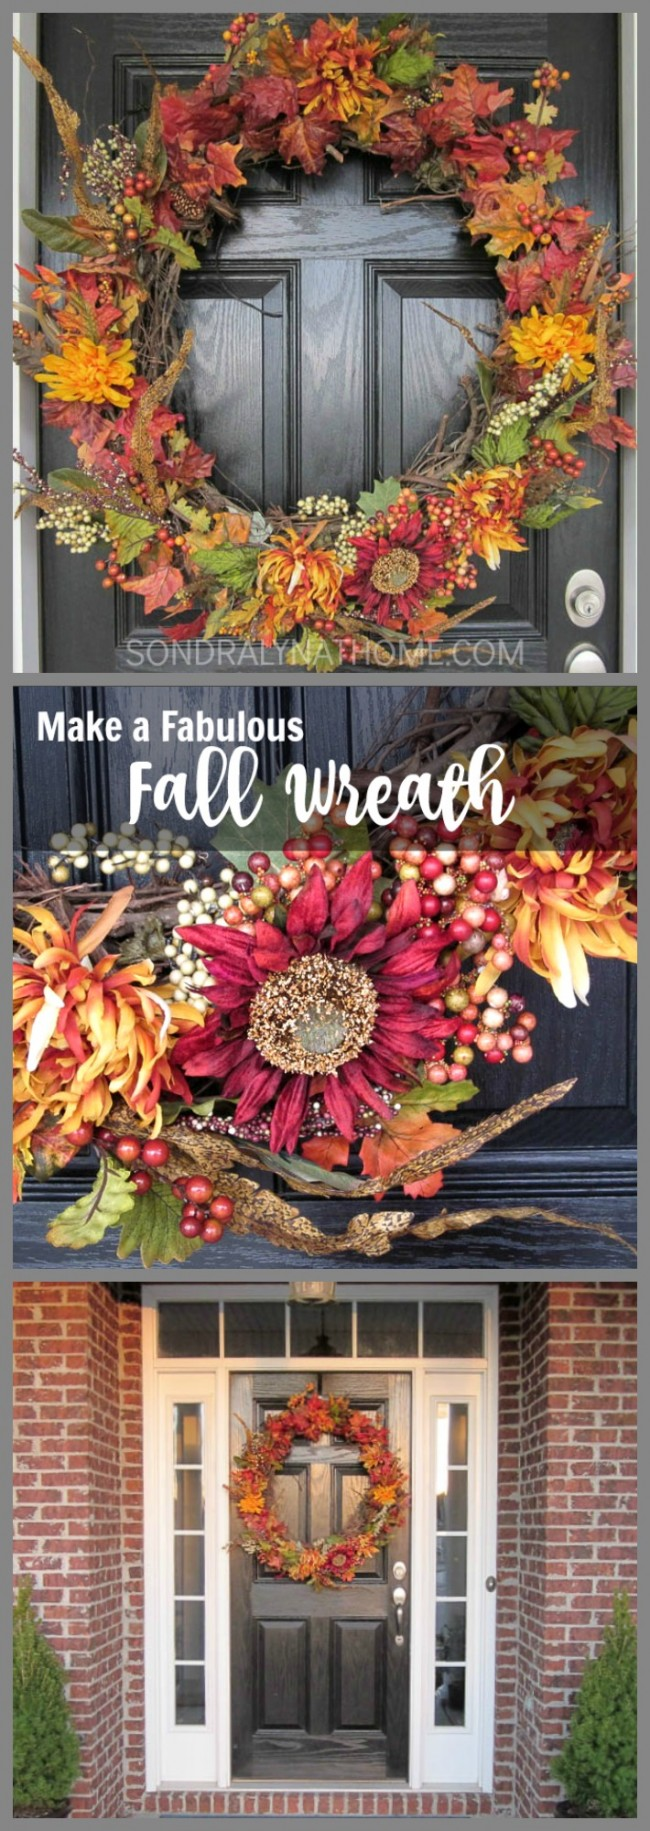 How to make the perfect Fall Wreath- collage - Sondra Lyn at Home.com